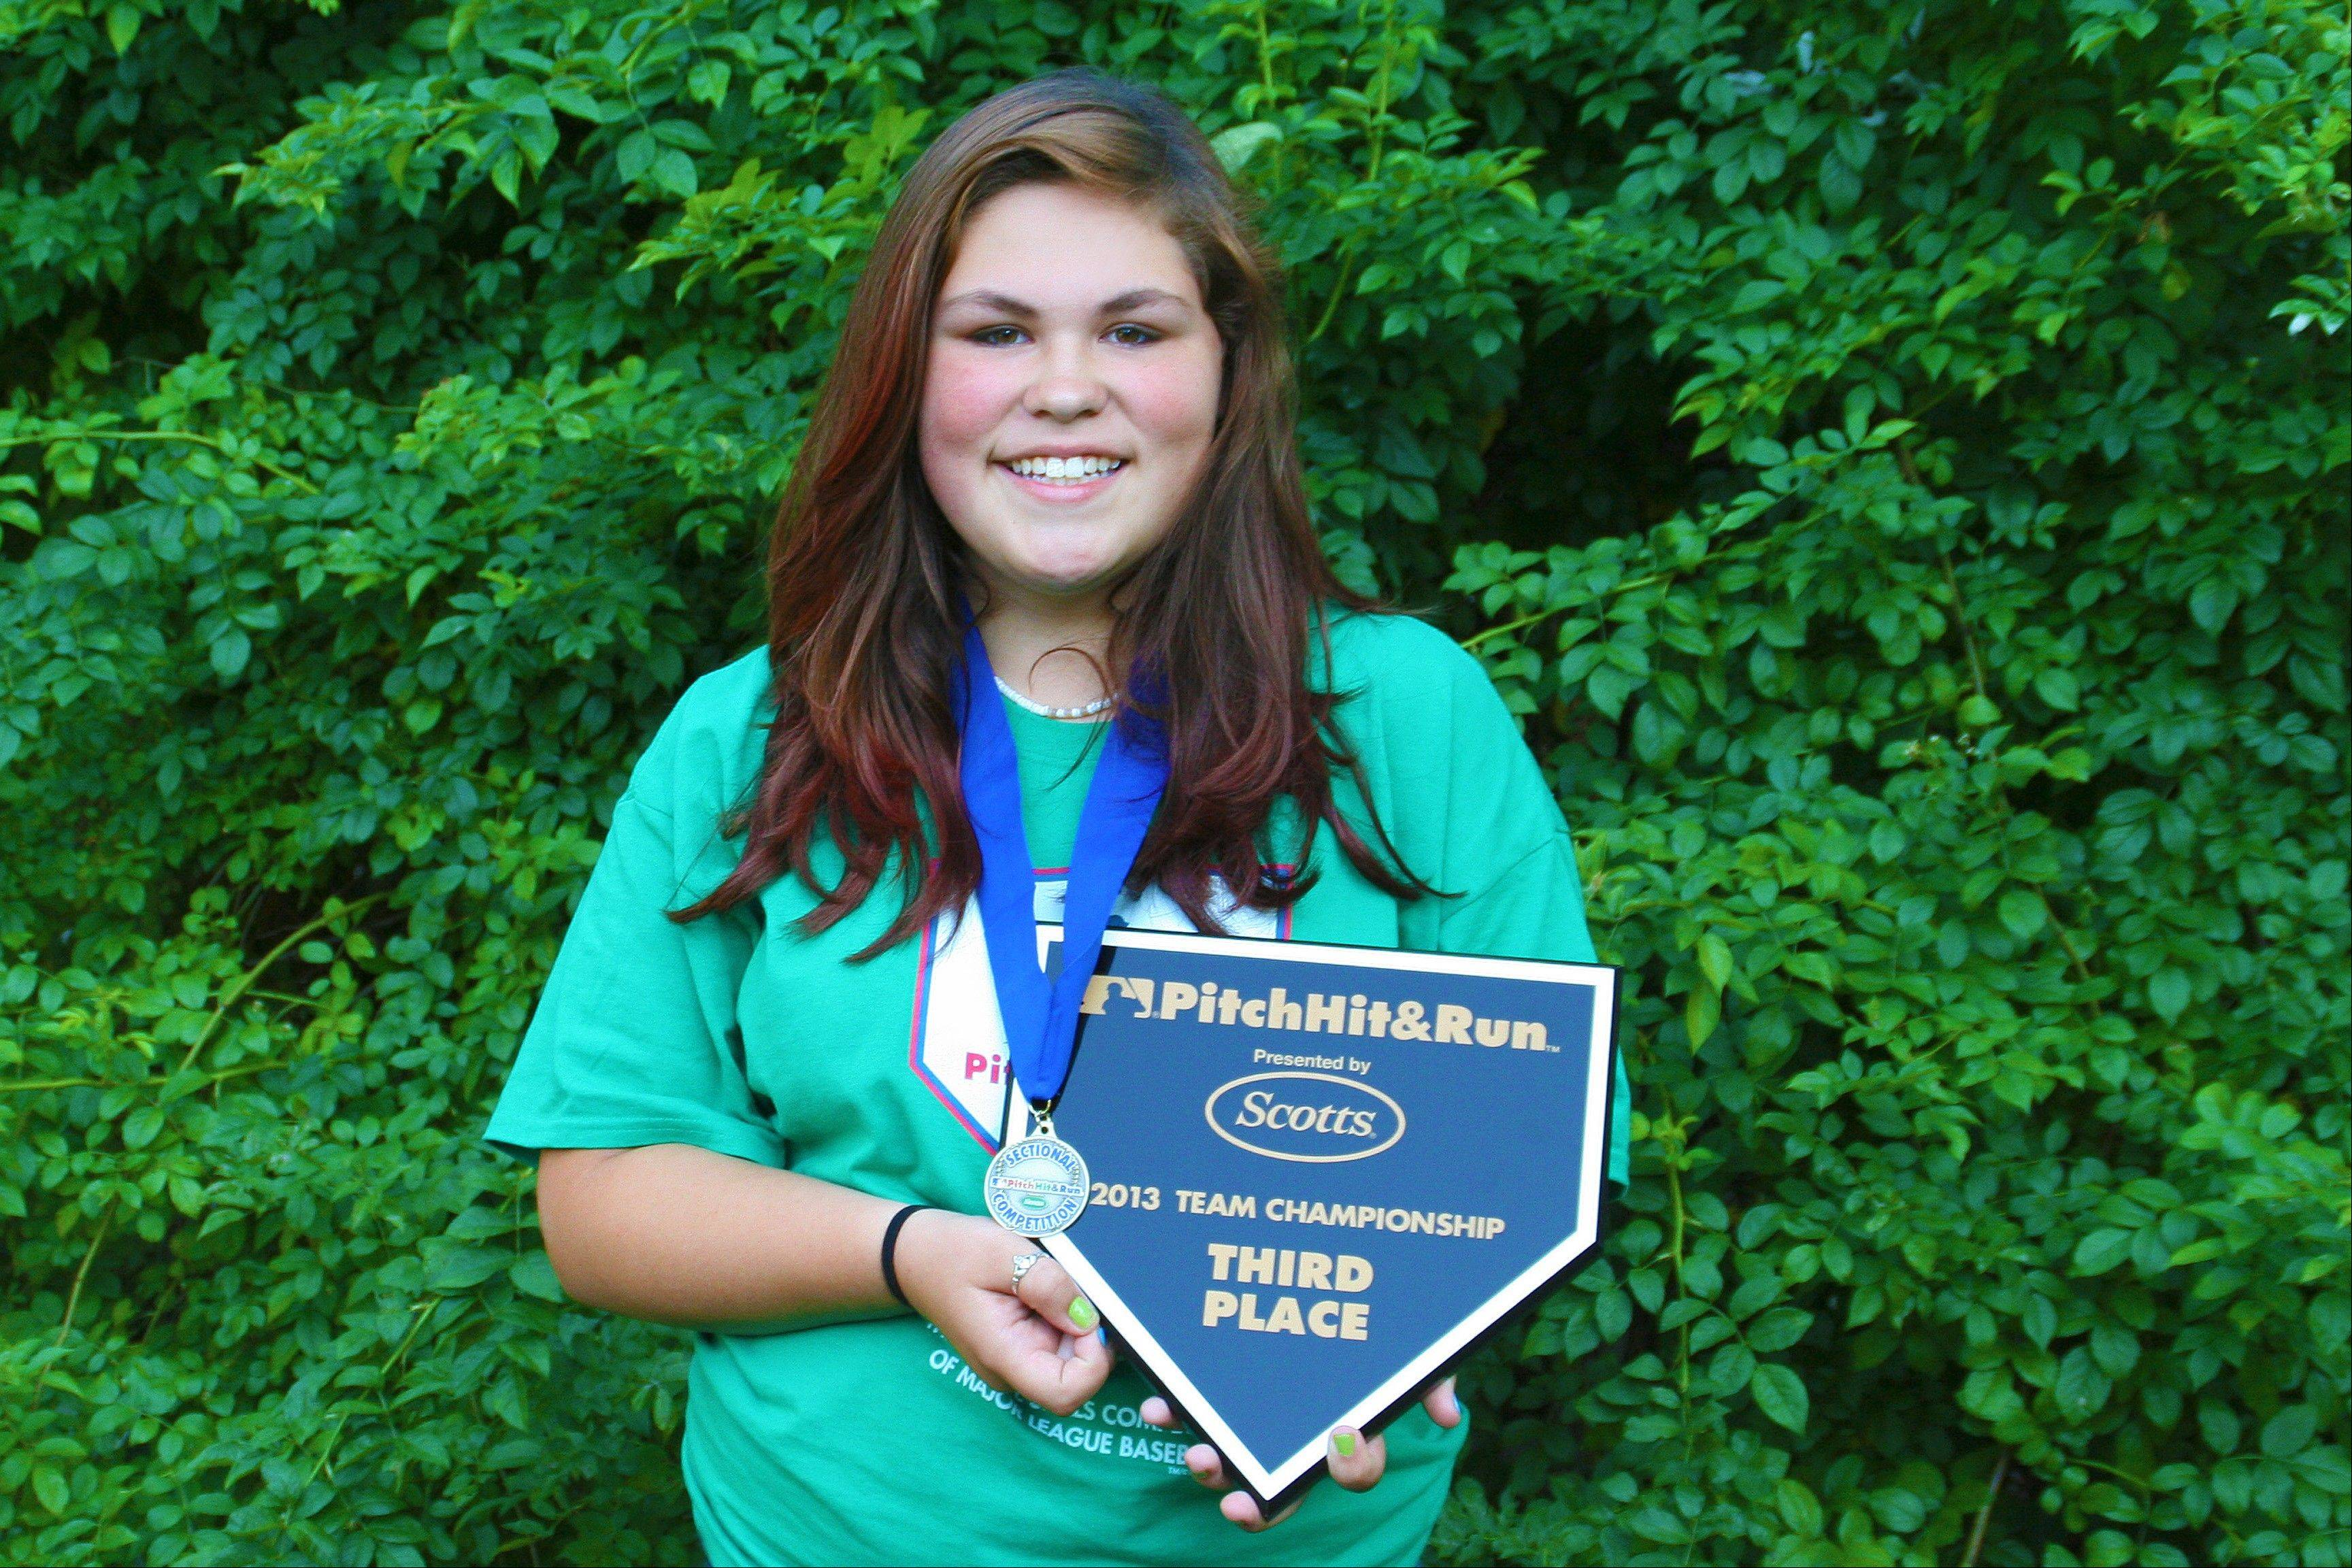 Maren Garnett, 12, of Des Plaines shows off her third-place plaque from the MLB Pitch, Hit & Run Team Championships June 23 at Wrigley Field.